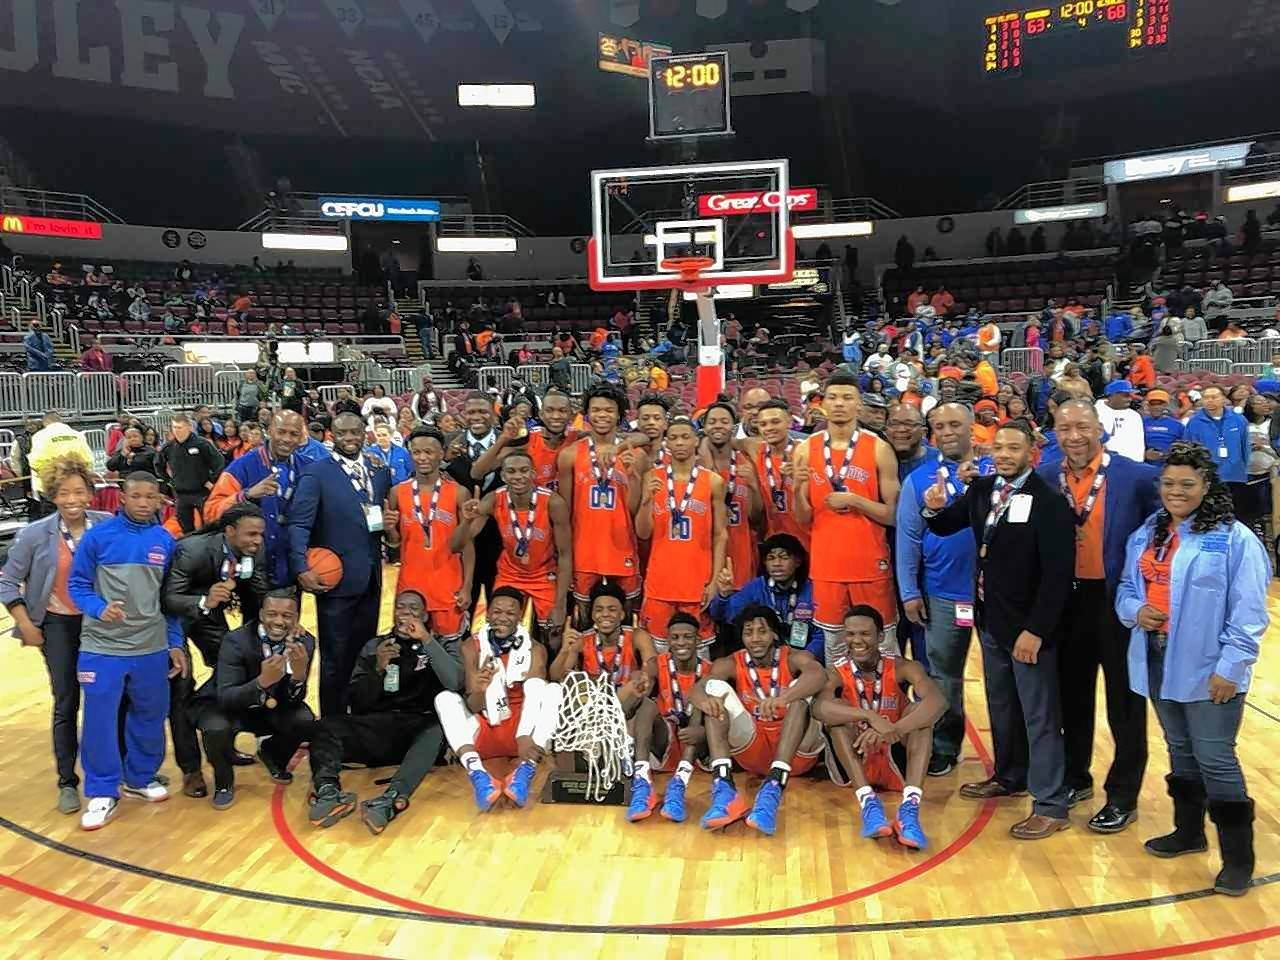 The East St. Louis Flyers pose with their Class 3A state championship trophy Saturday at Carver Arena in Peoria. The Flyers downed Chicago Bogan 68-63 in overtime to win the program's first state title.